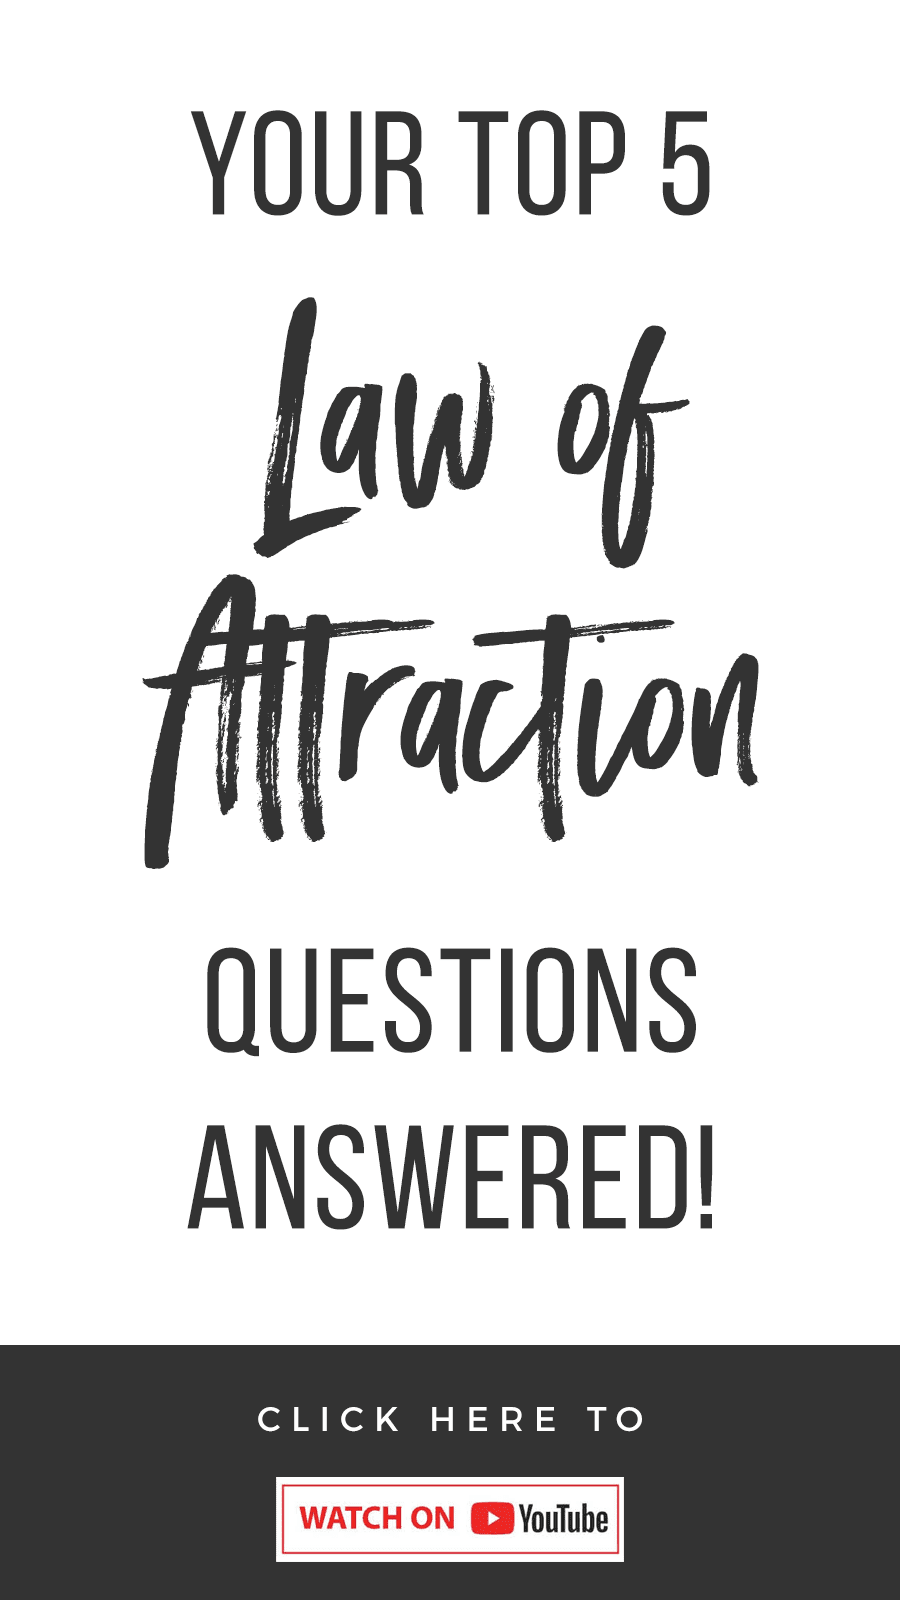 Your Top 5 Law of Attraction Questions Answered